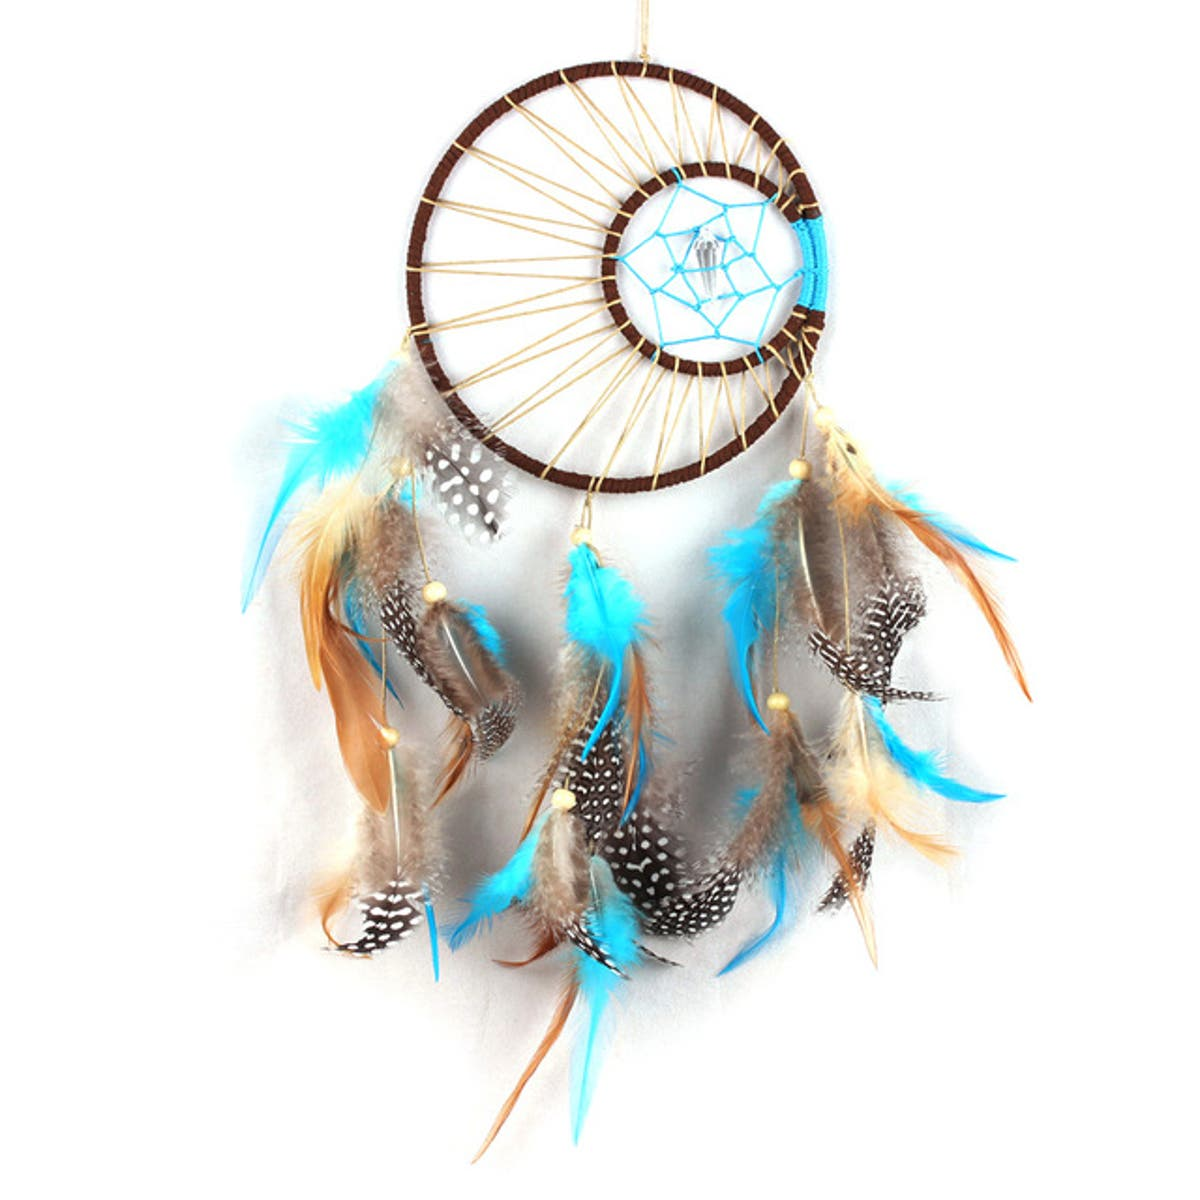 Dreamcatcher - The Powerful Talisman of Native Americans